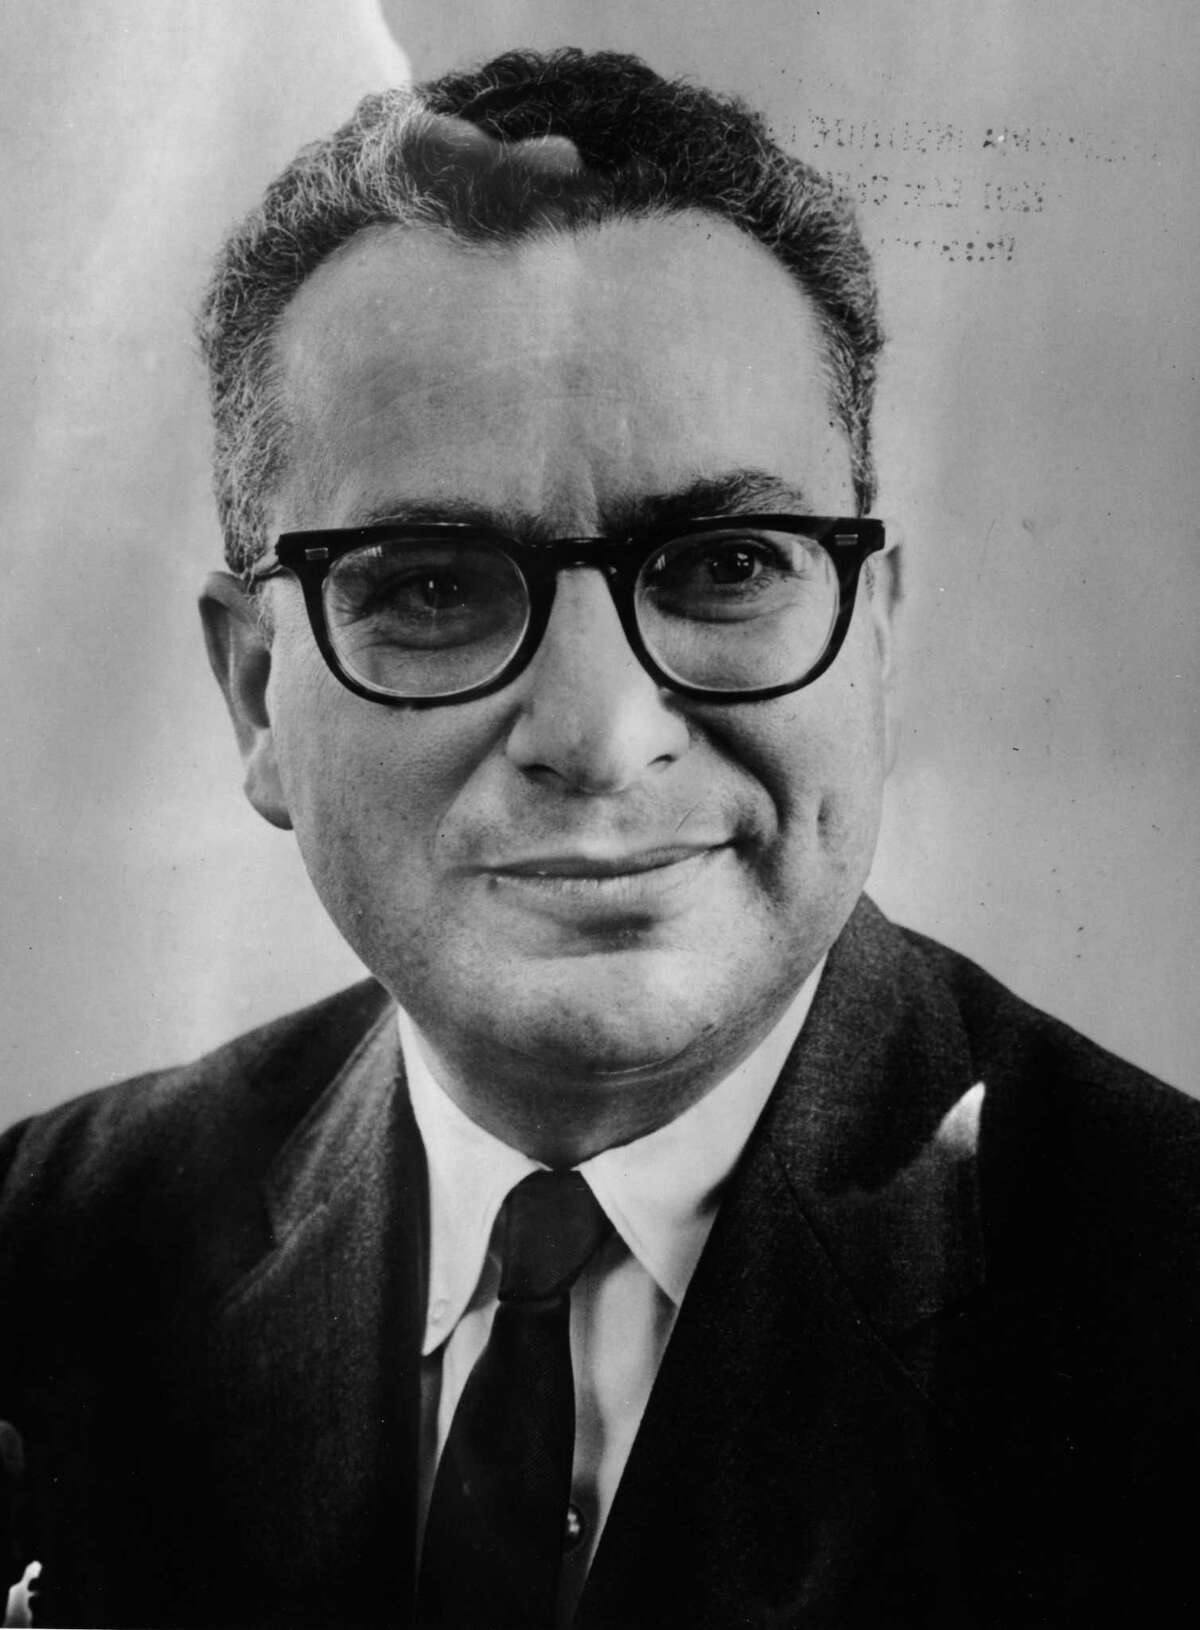 Portrait of Dr Murray Gell-Man, winner of the Nobel Prize for Physics, New York, November 13th 1969. (Photo by Keystone/Pictorial Parade/Getty Images)